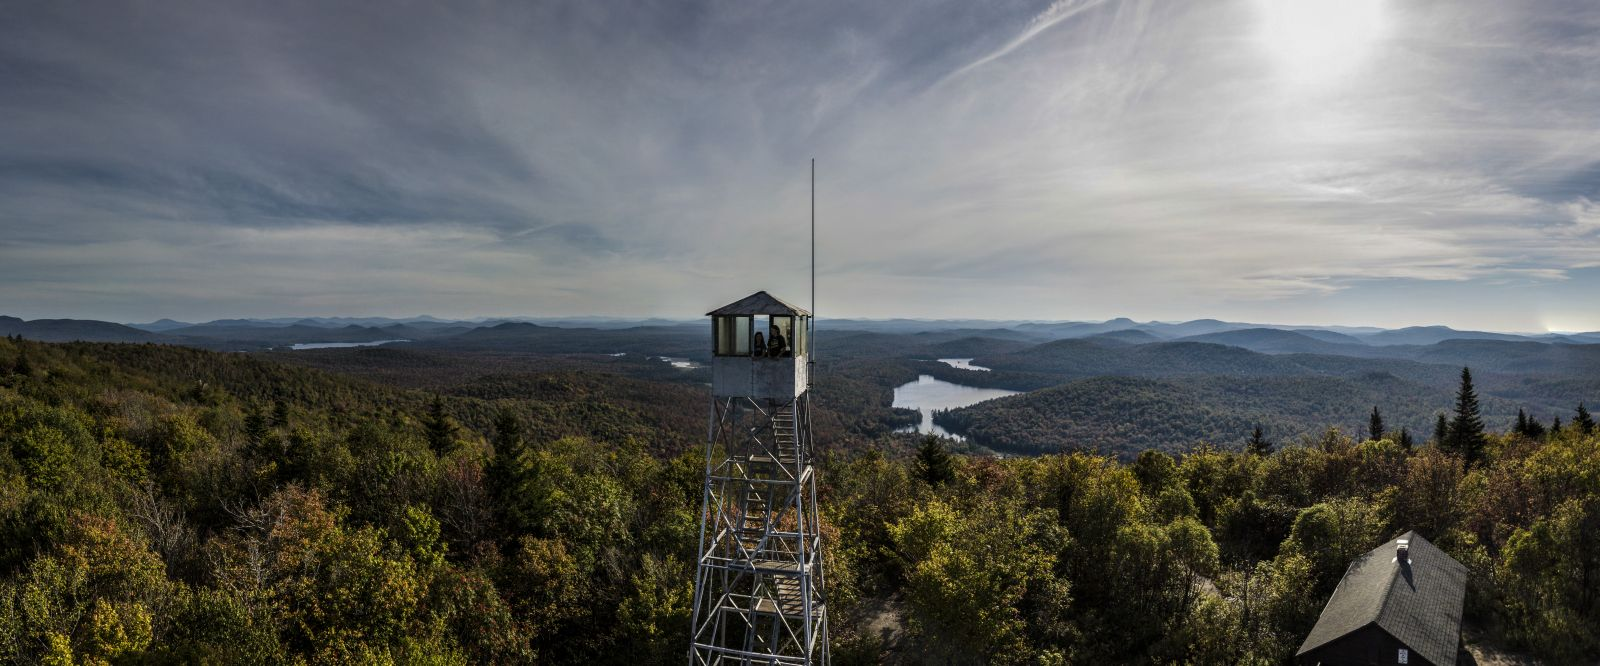 The fire tower on Mount Arab's summit.